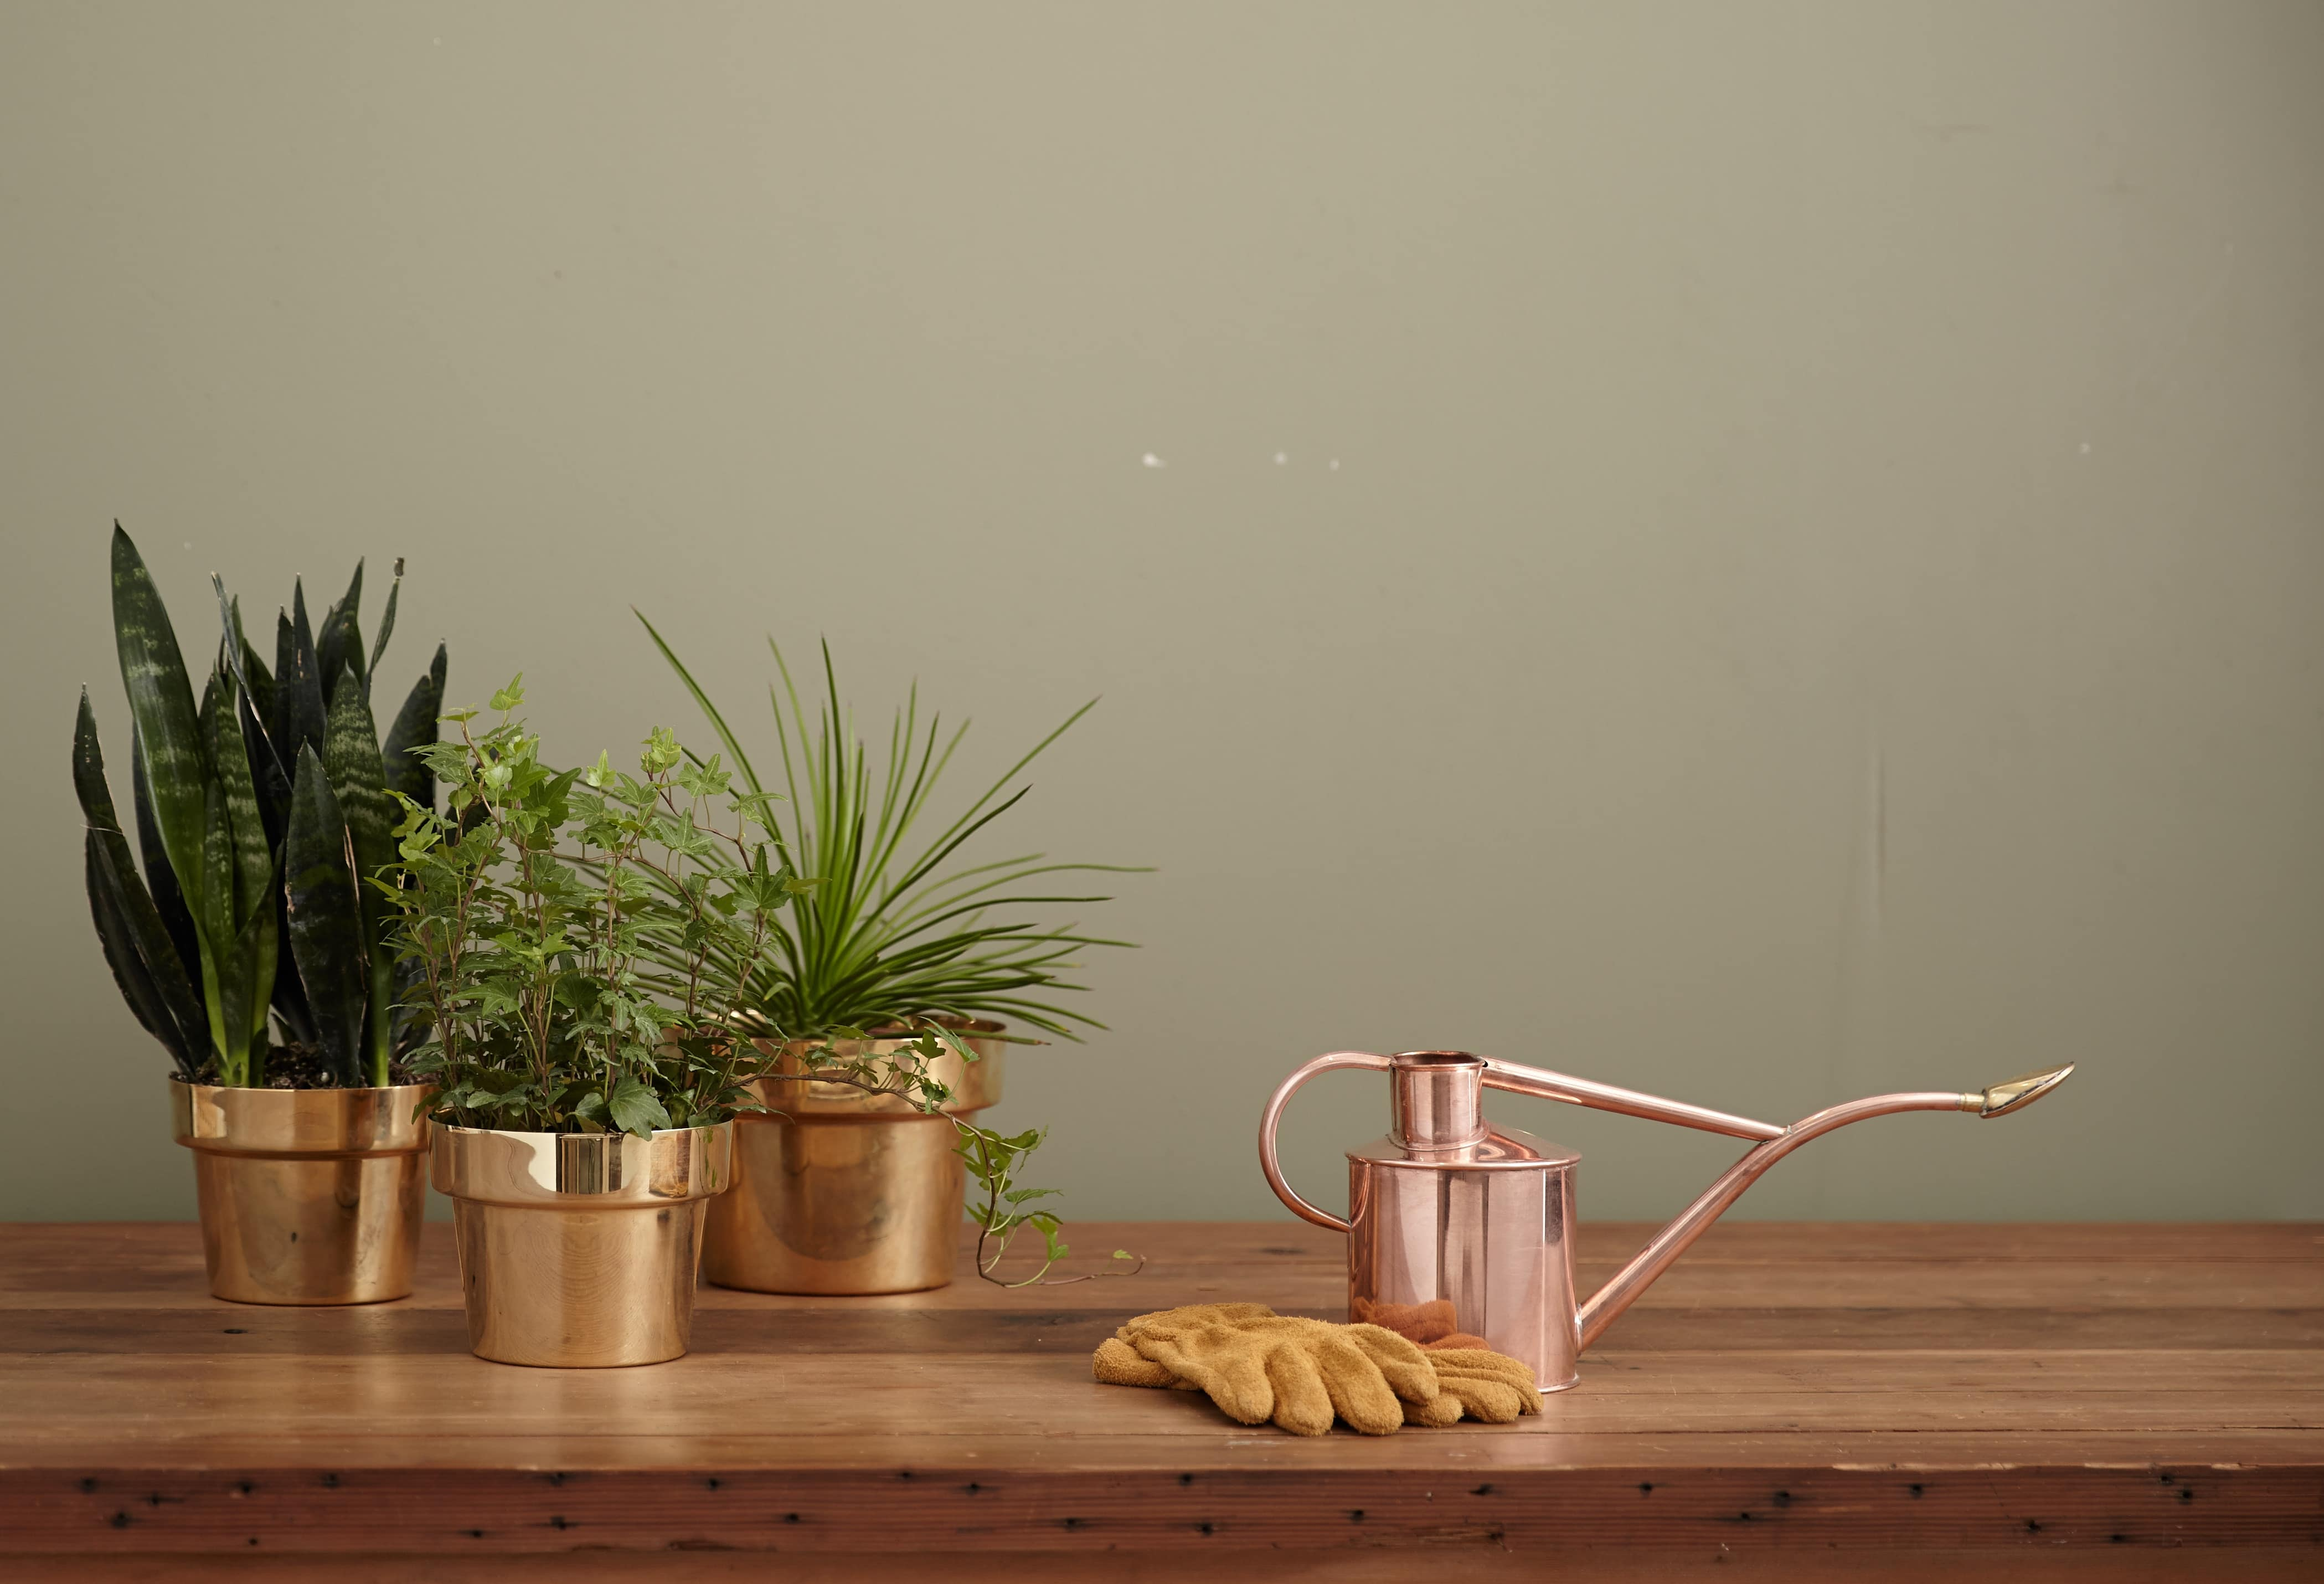 The Art of Watering Plants